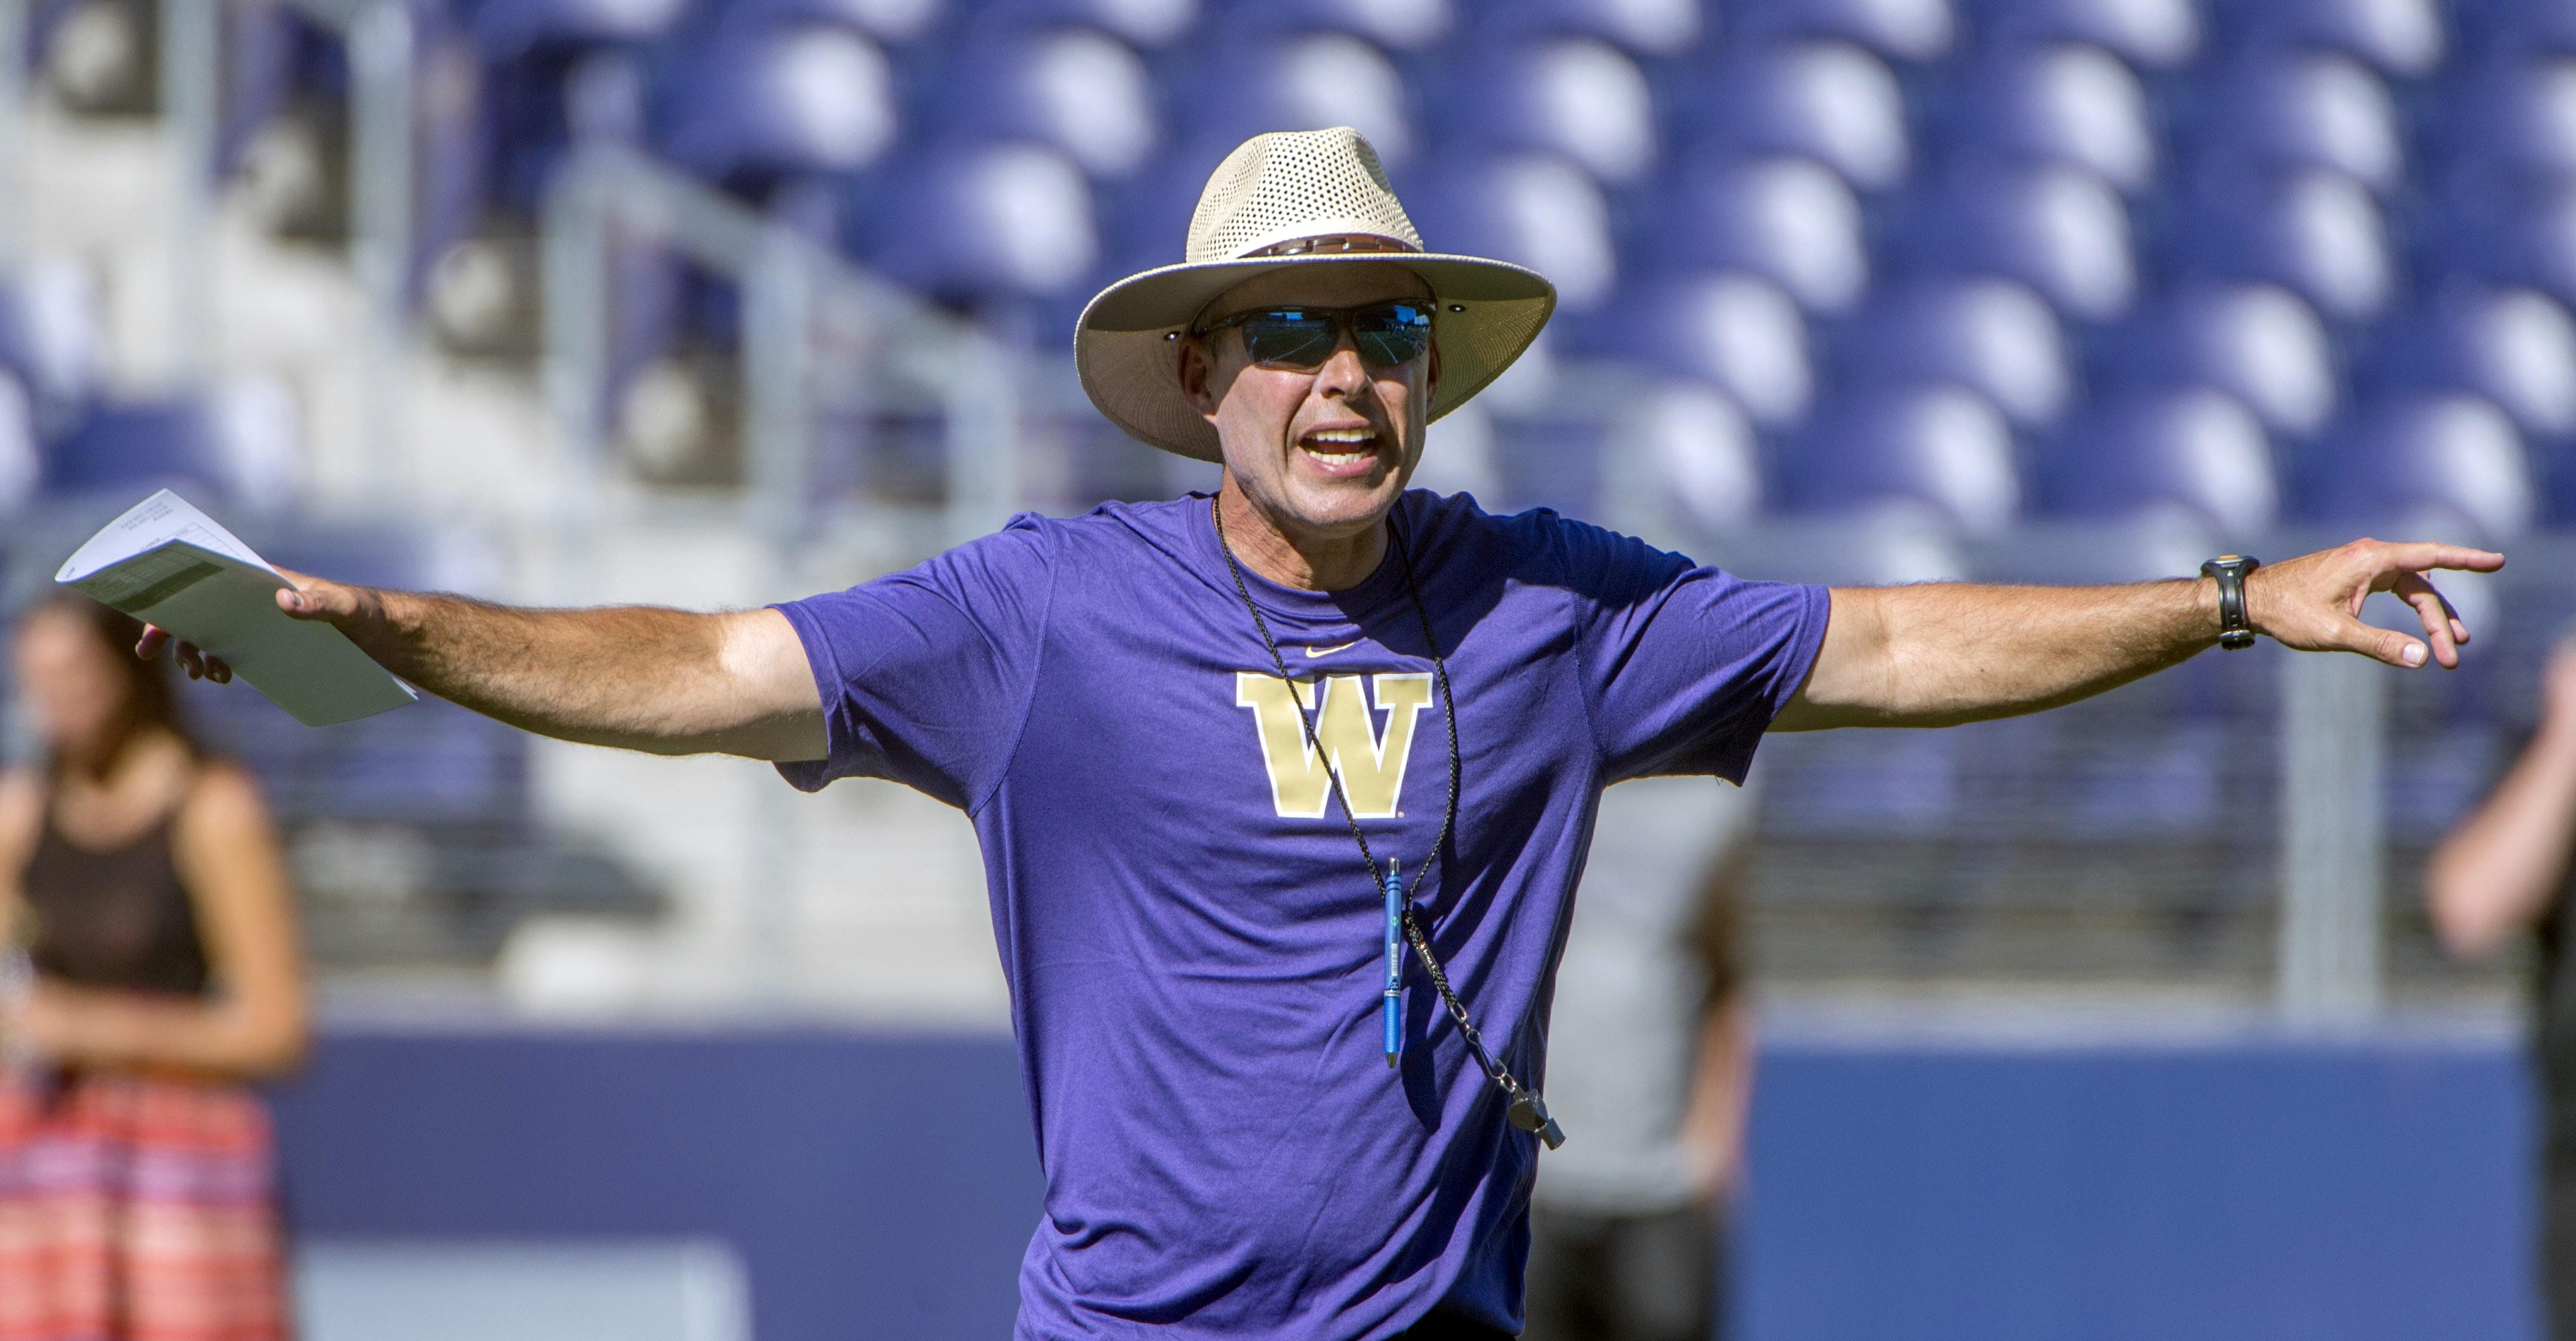 chris petersen - photo #25